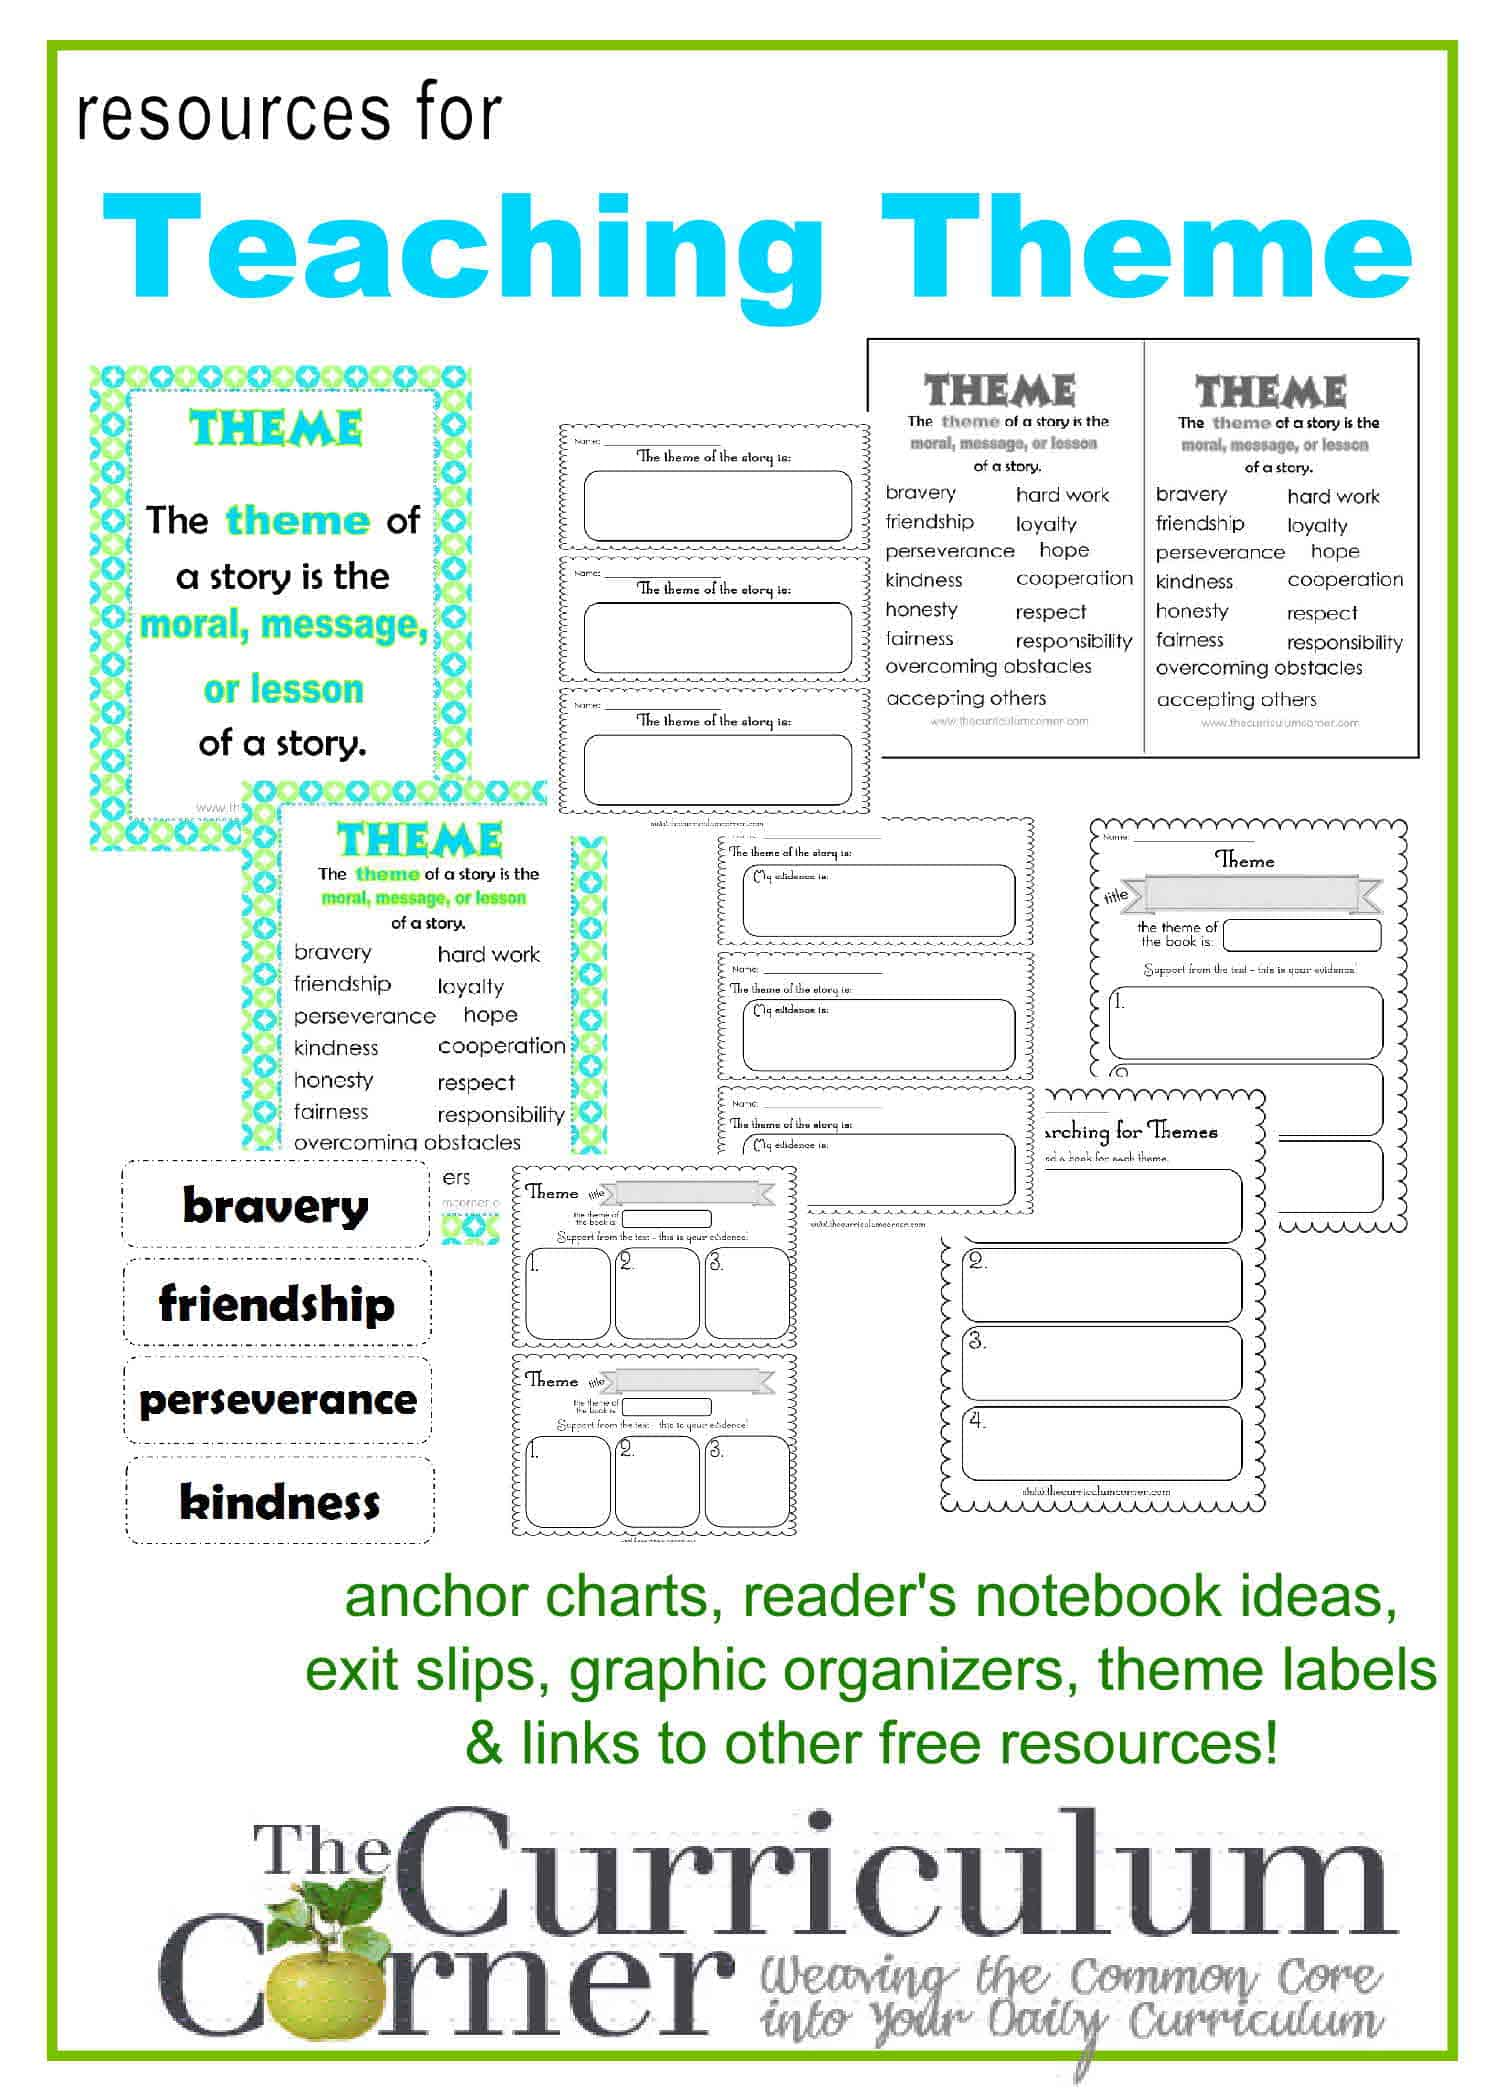 Worksheet On Identifying Theme